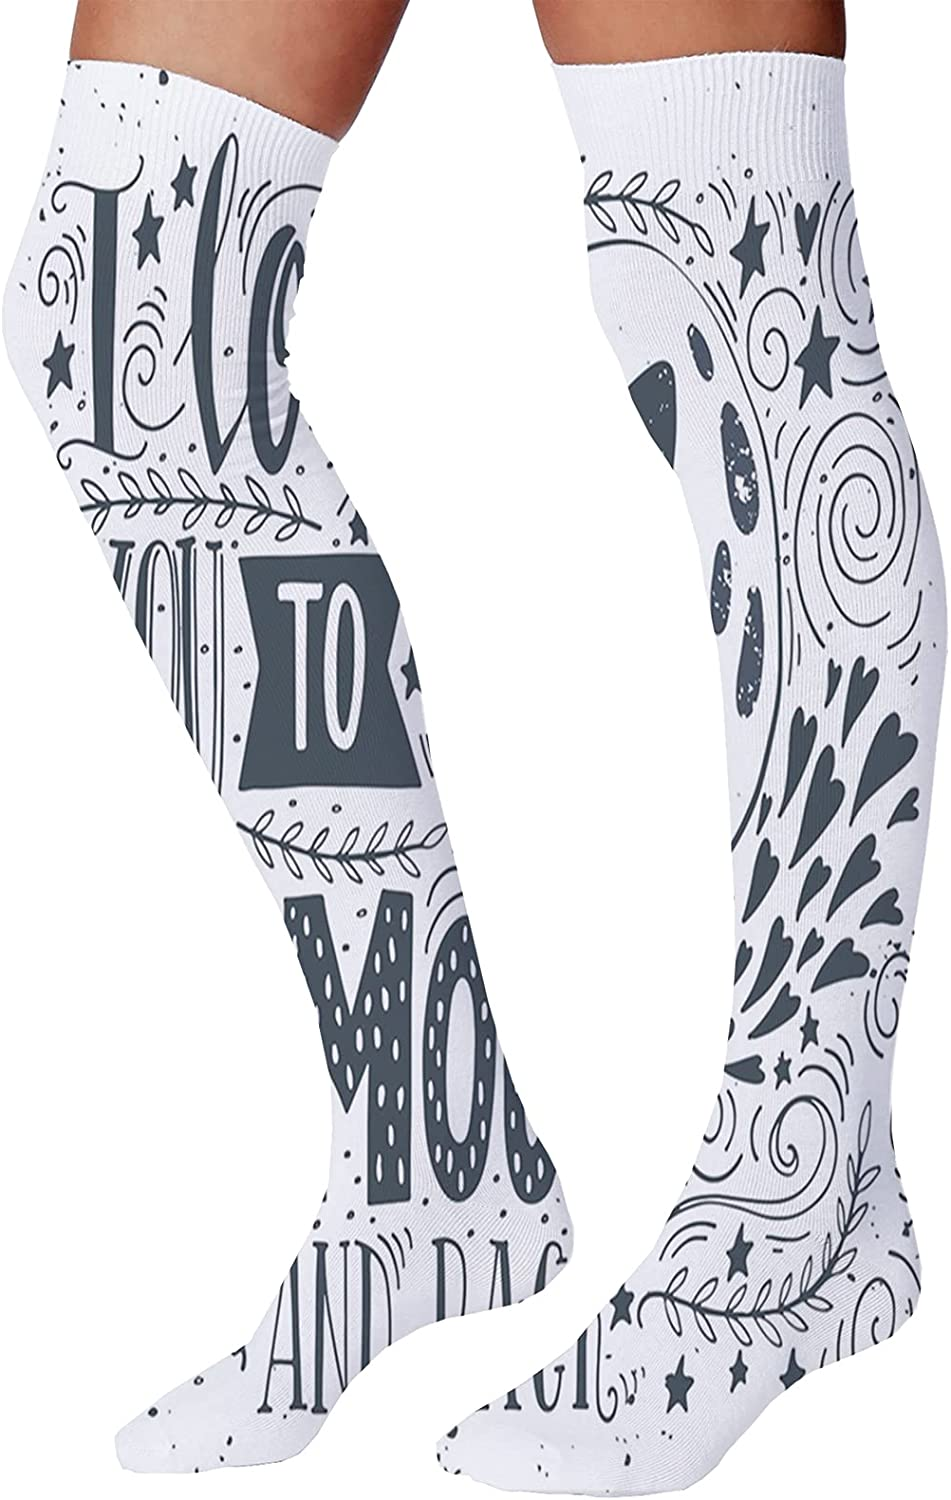 Women's Max 44% New arrival OFF Socks 23.6 Inch Celebratory with Groom Bride Silhouettes